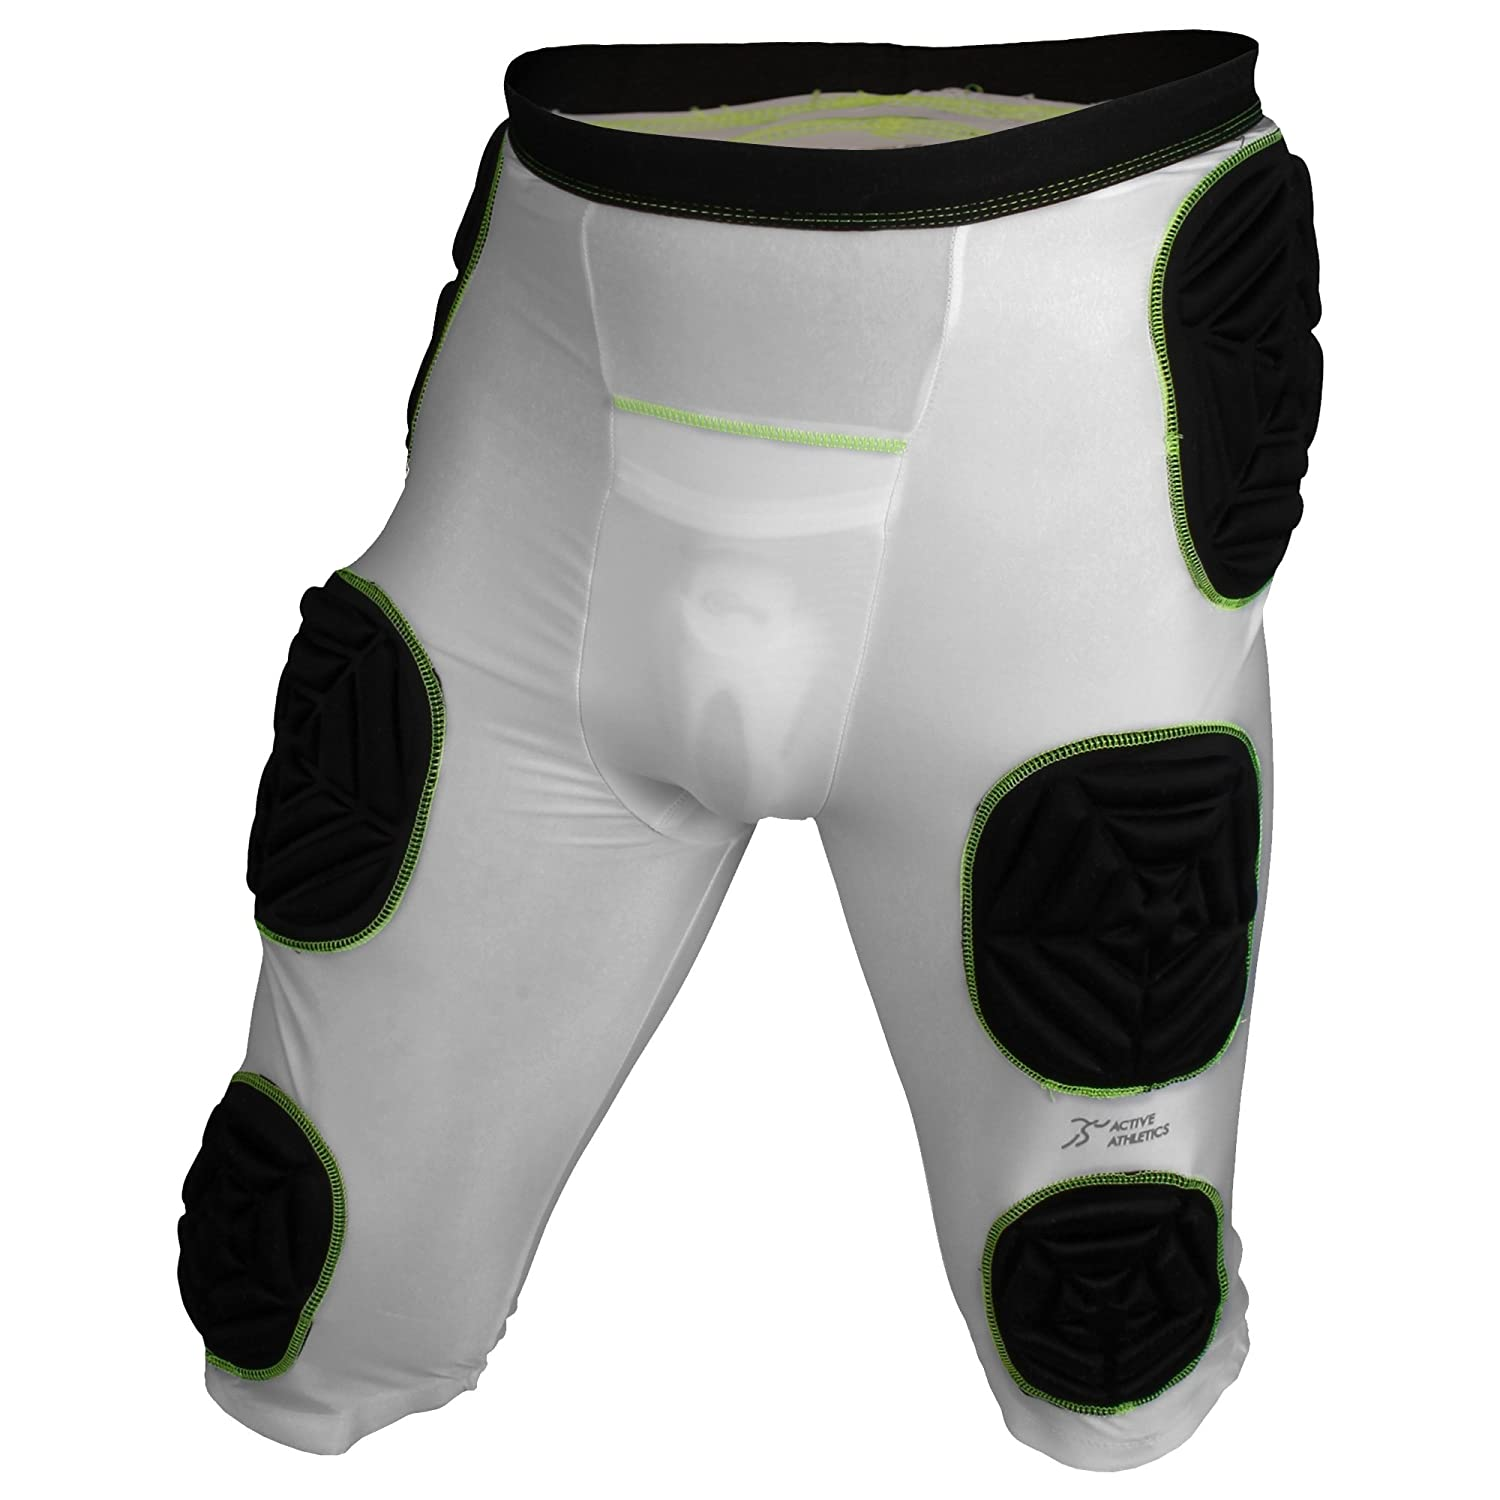 Active Athletics American Football Brief with 7Integrated Pads white